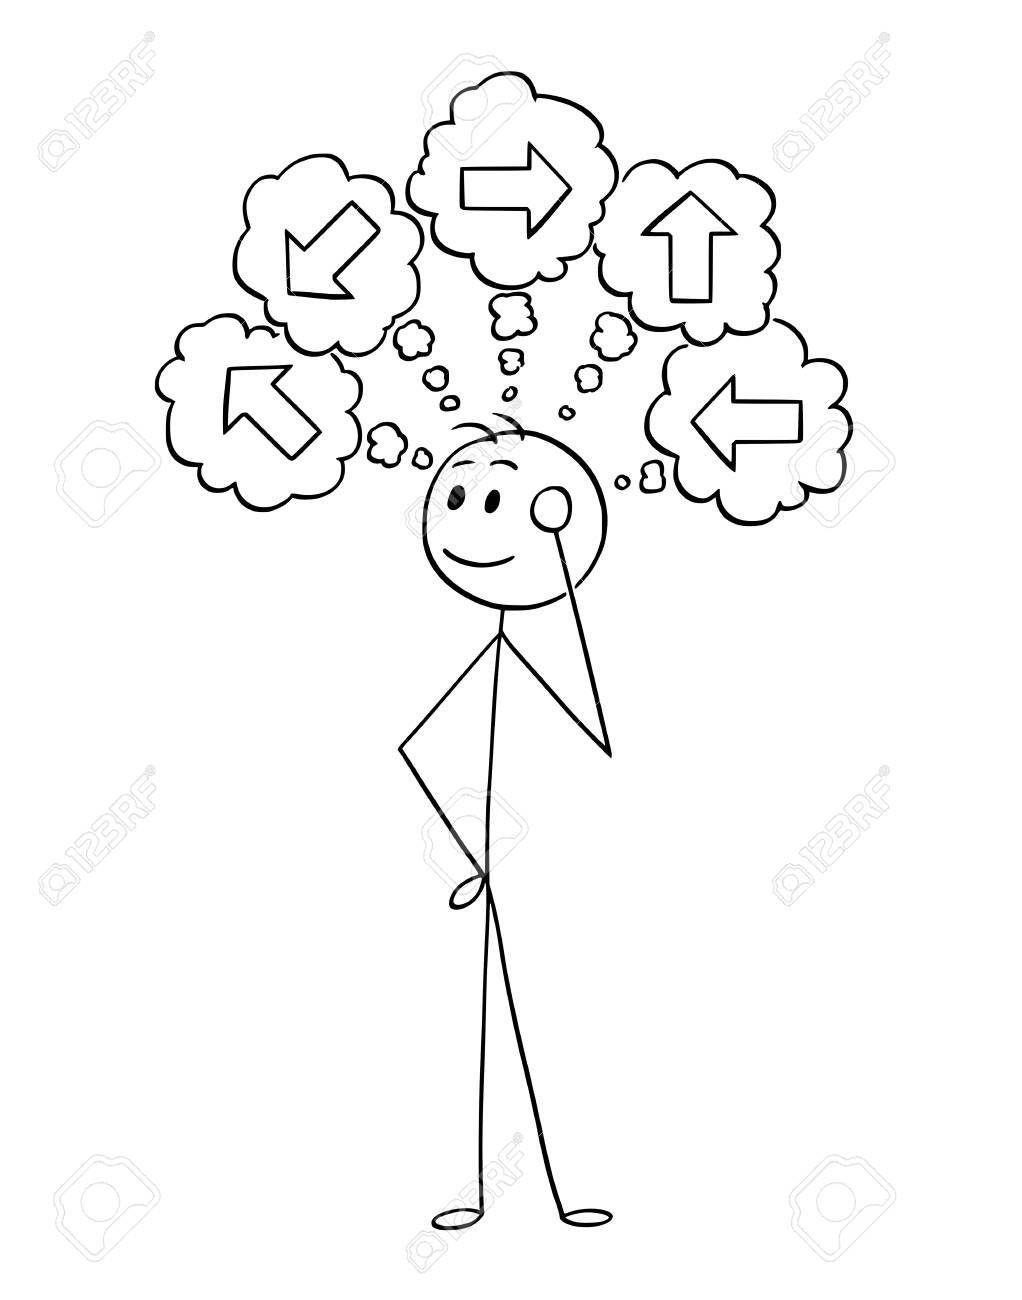 Cartoon stick man drawing conceptual illustration of businessman thinking about what direction to choose. Business concept of decision. - 96115915